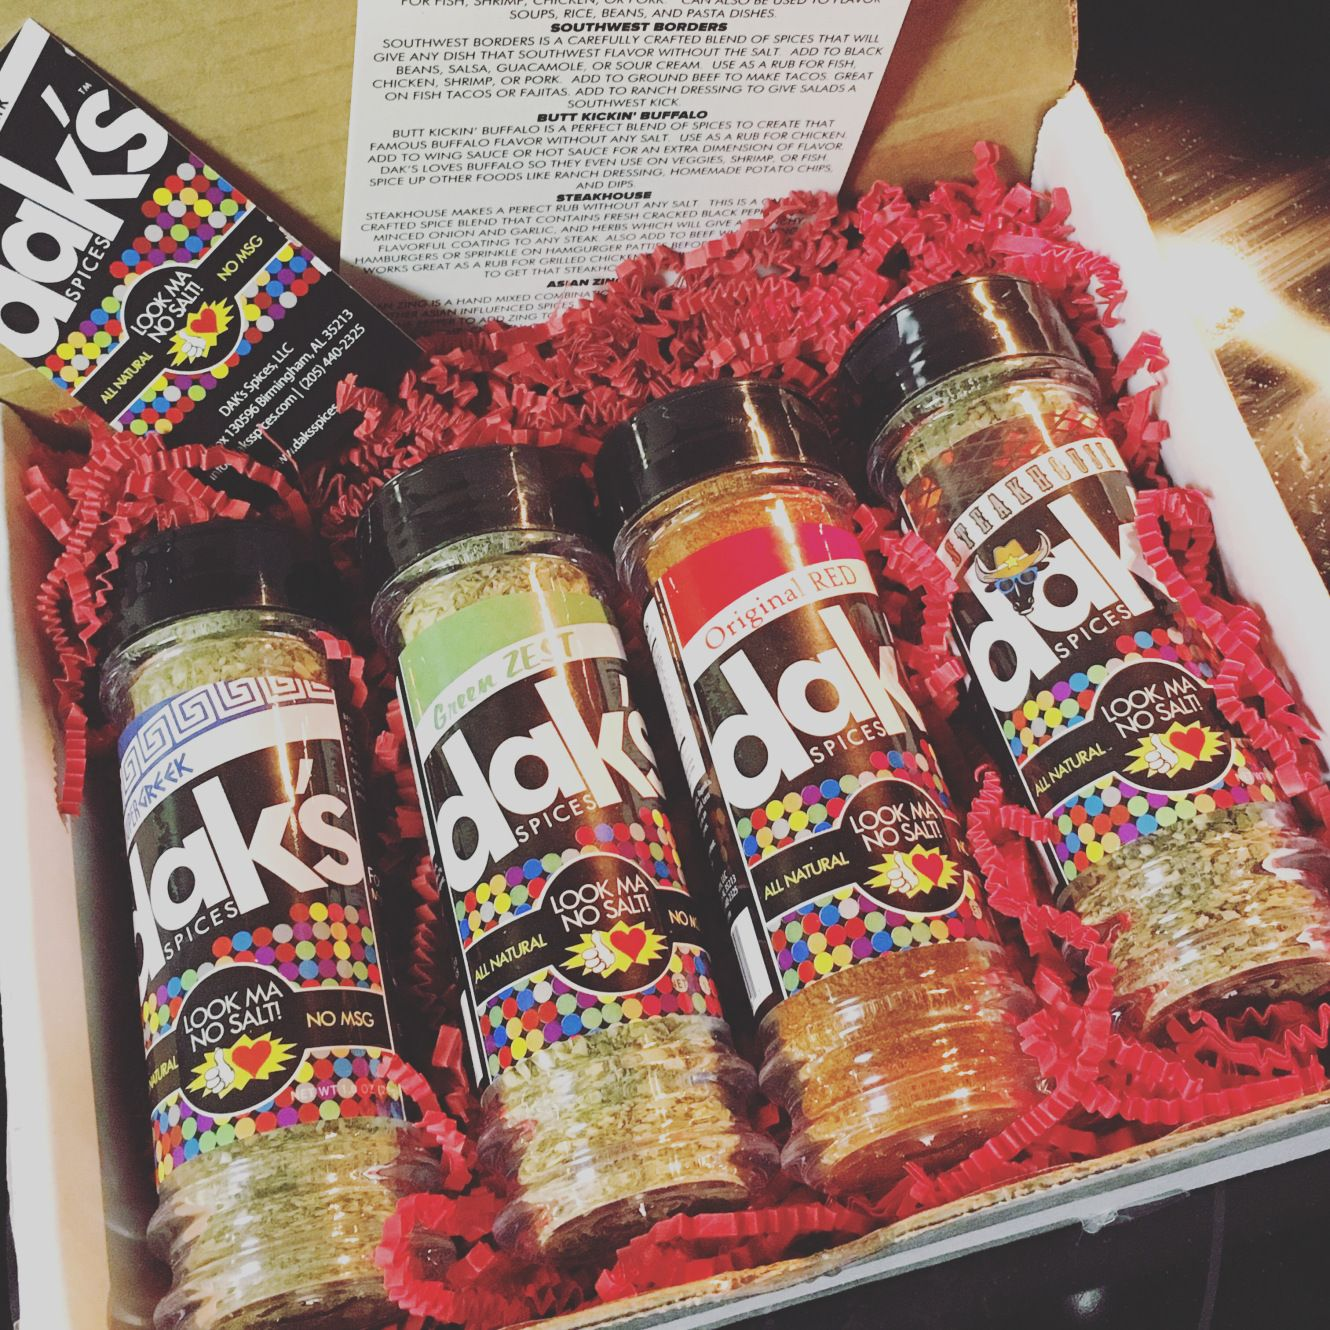 Spice up your nutrition daks spices review great for cooking recipes malvernweather Gallery